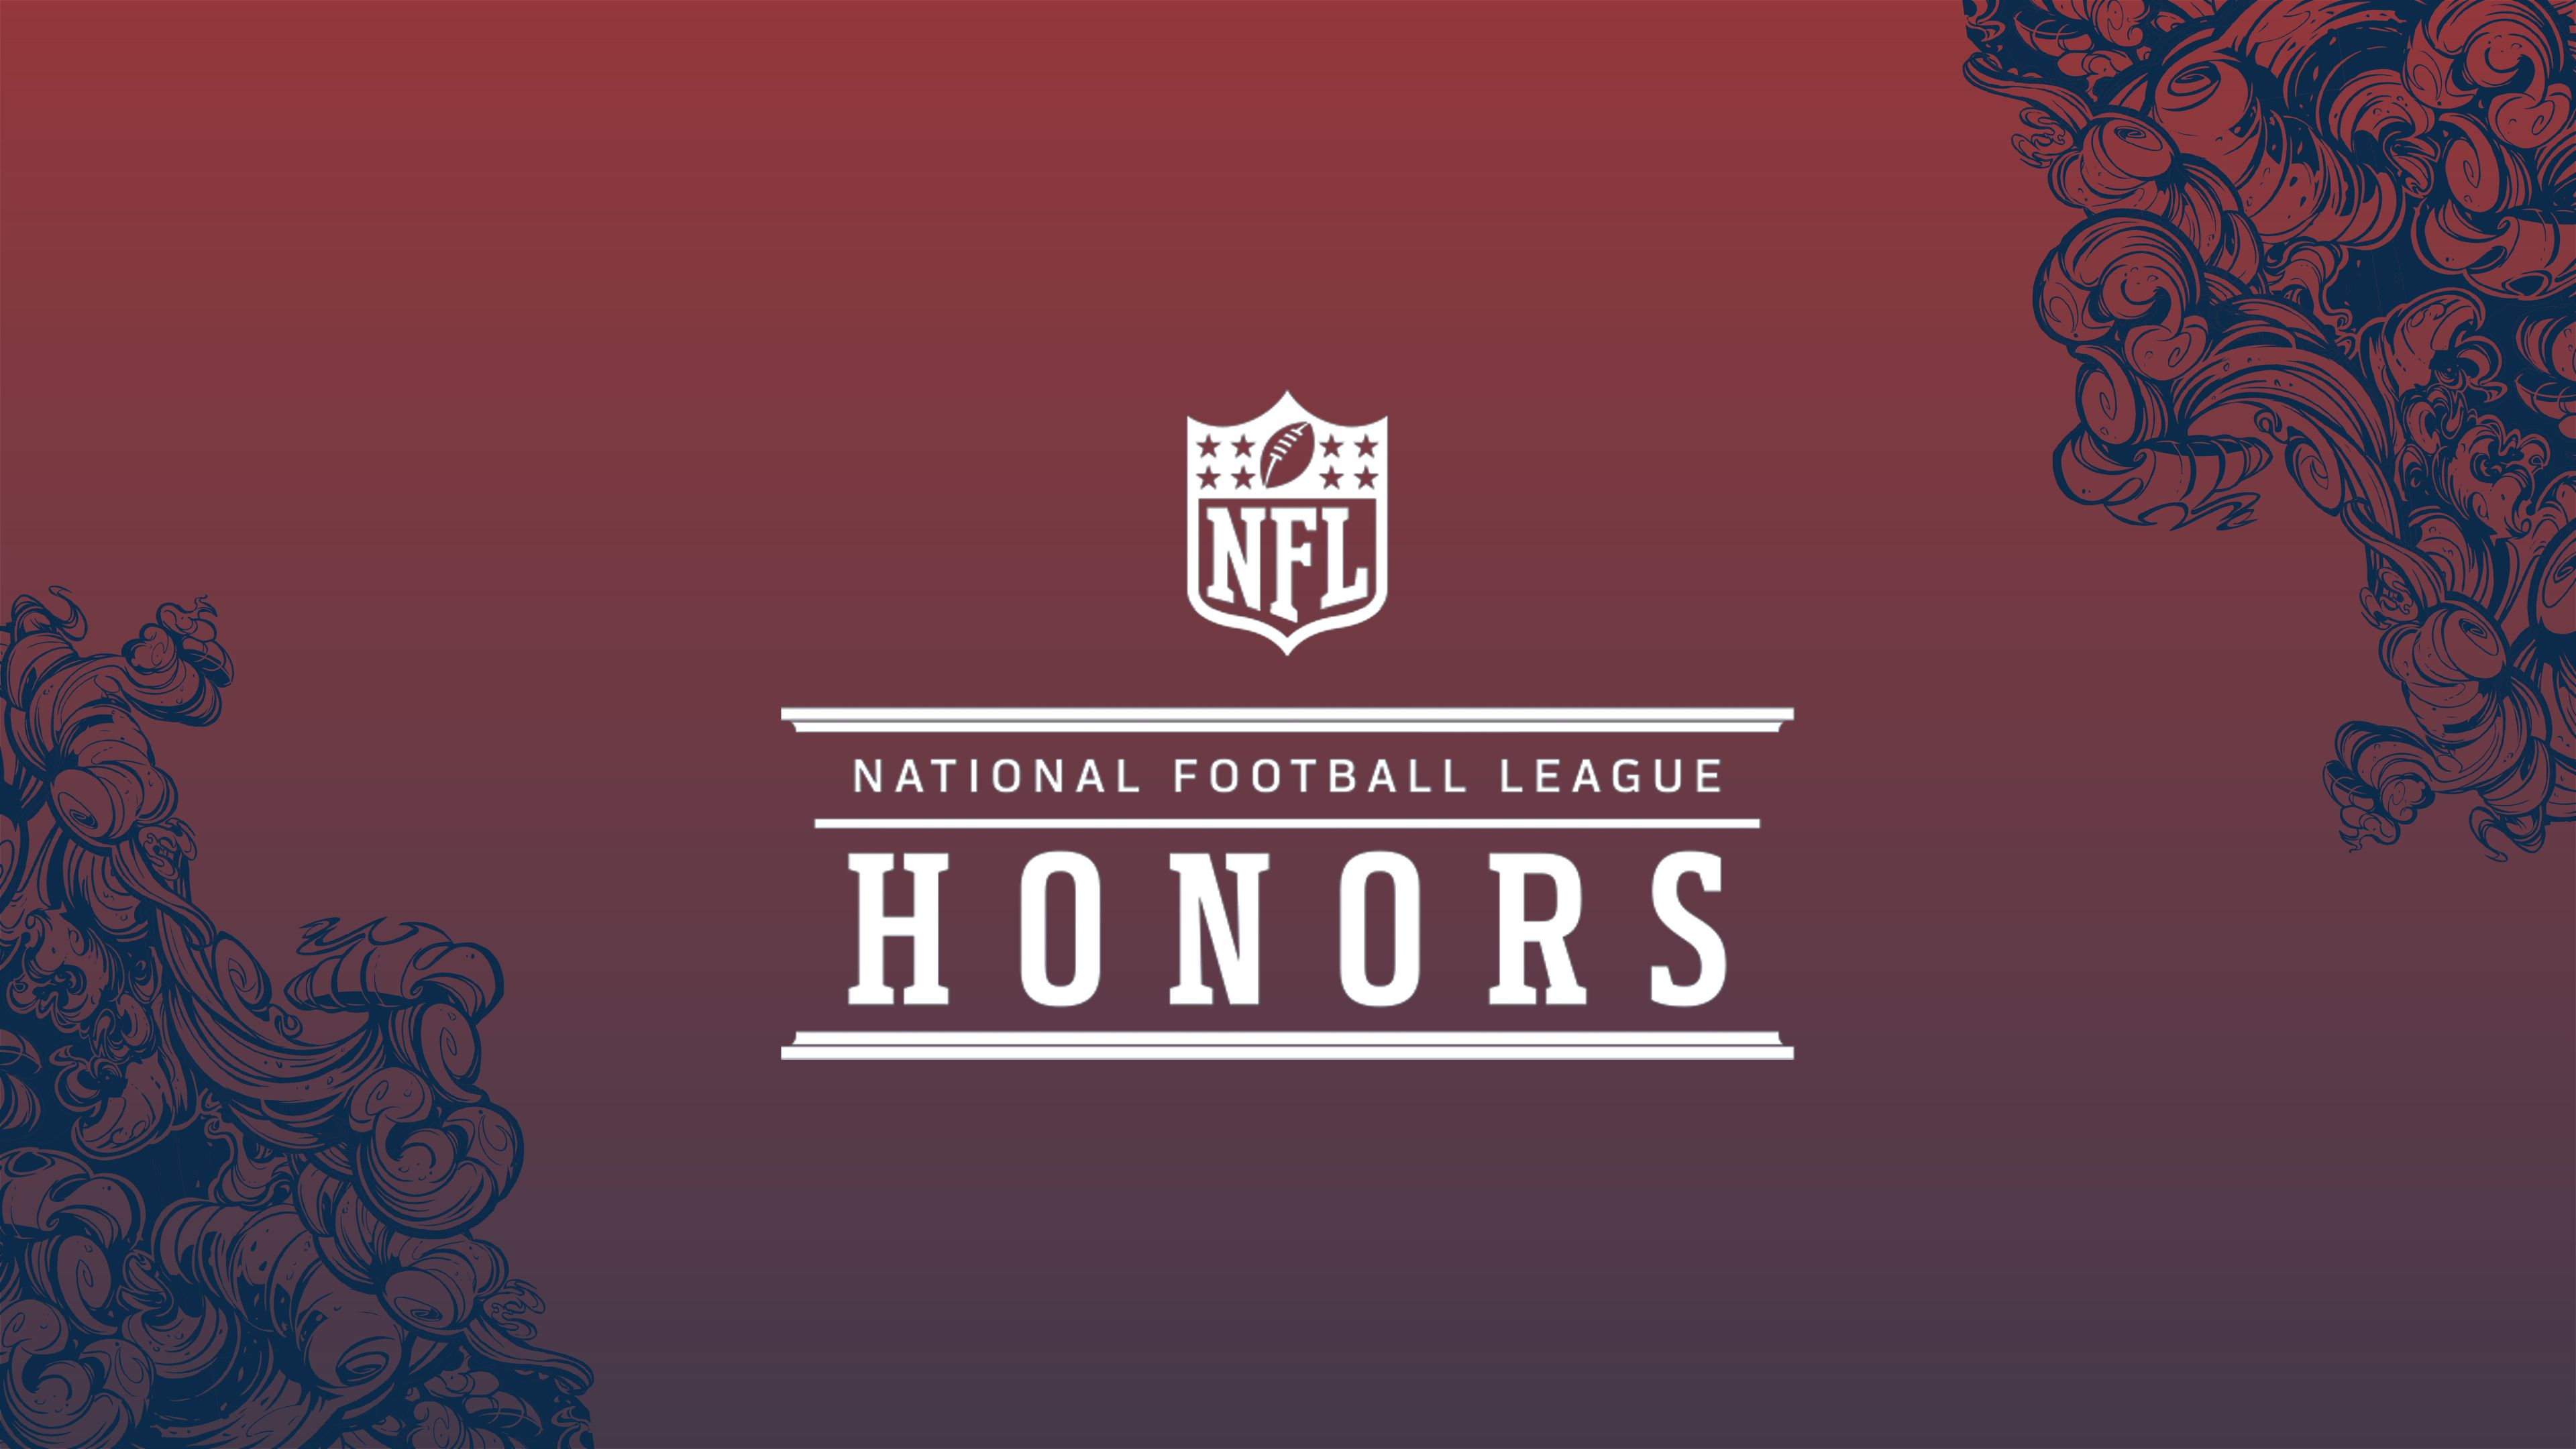 10th Annual NFL Honors